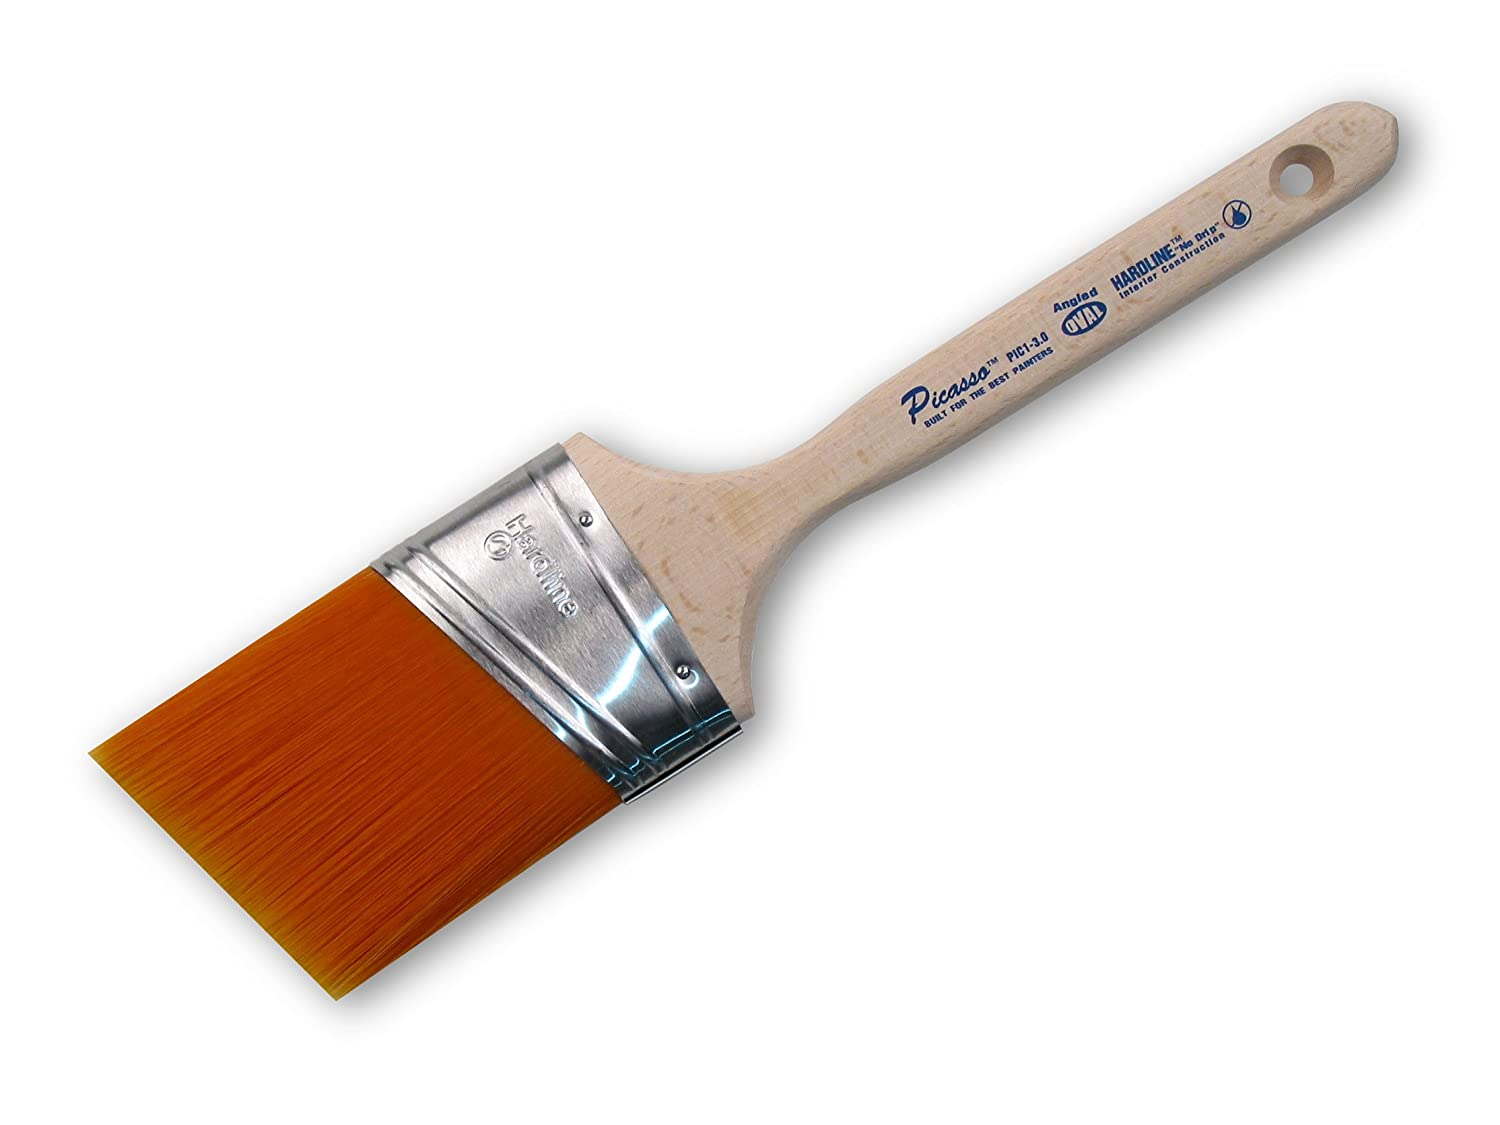 proform technologies pic1 1 5 picasso oval angle sash paint brush 1